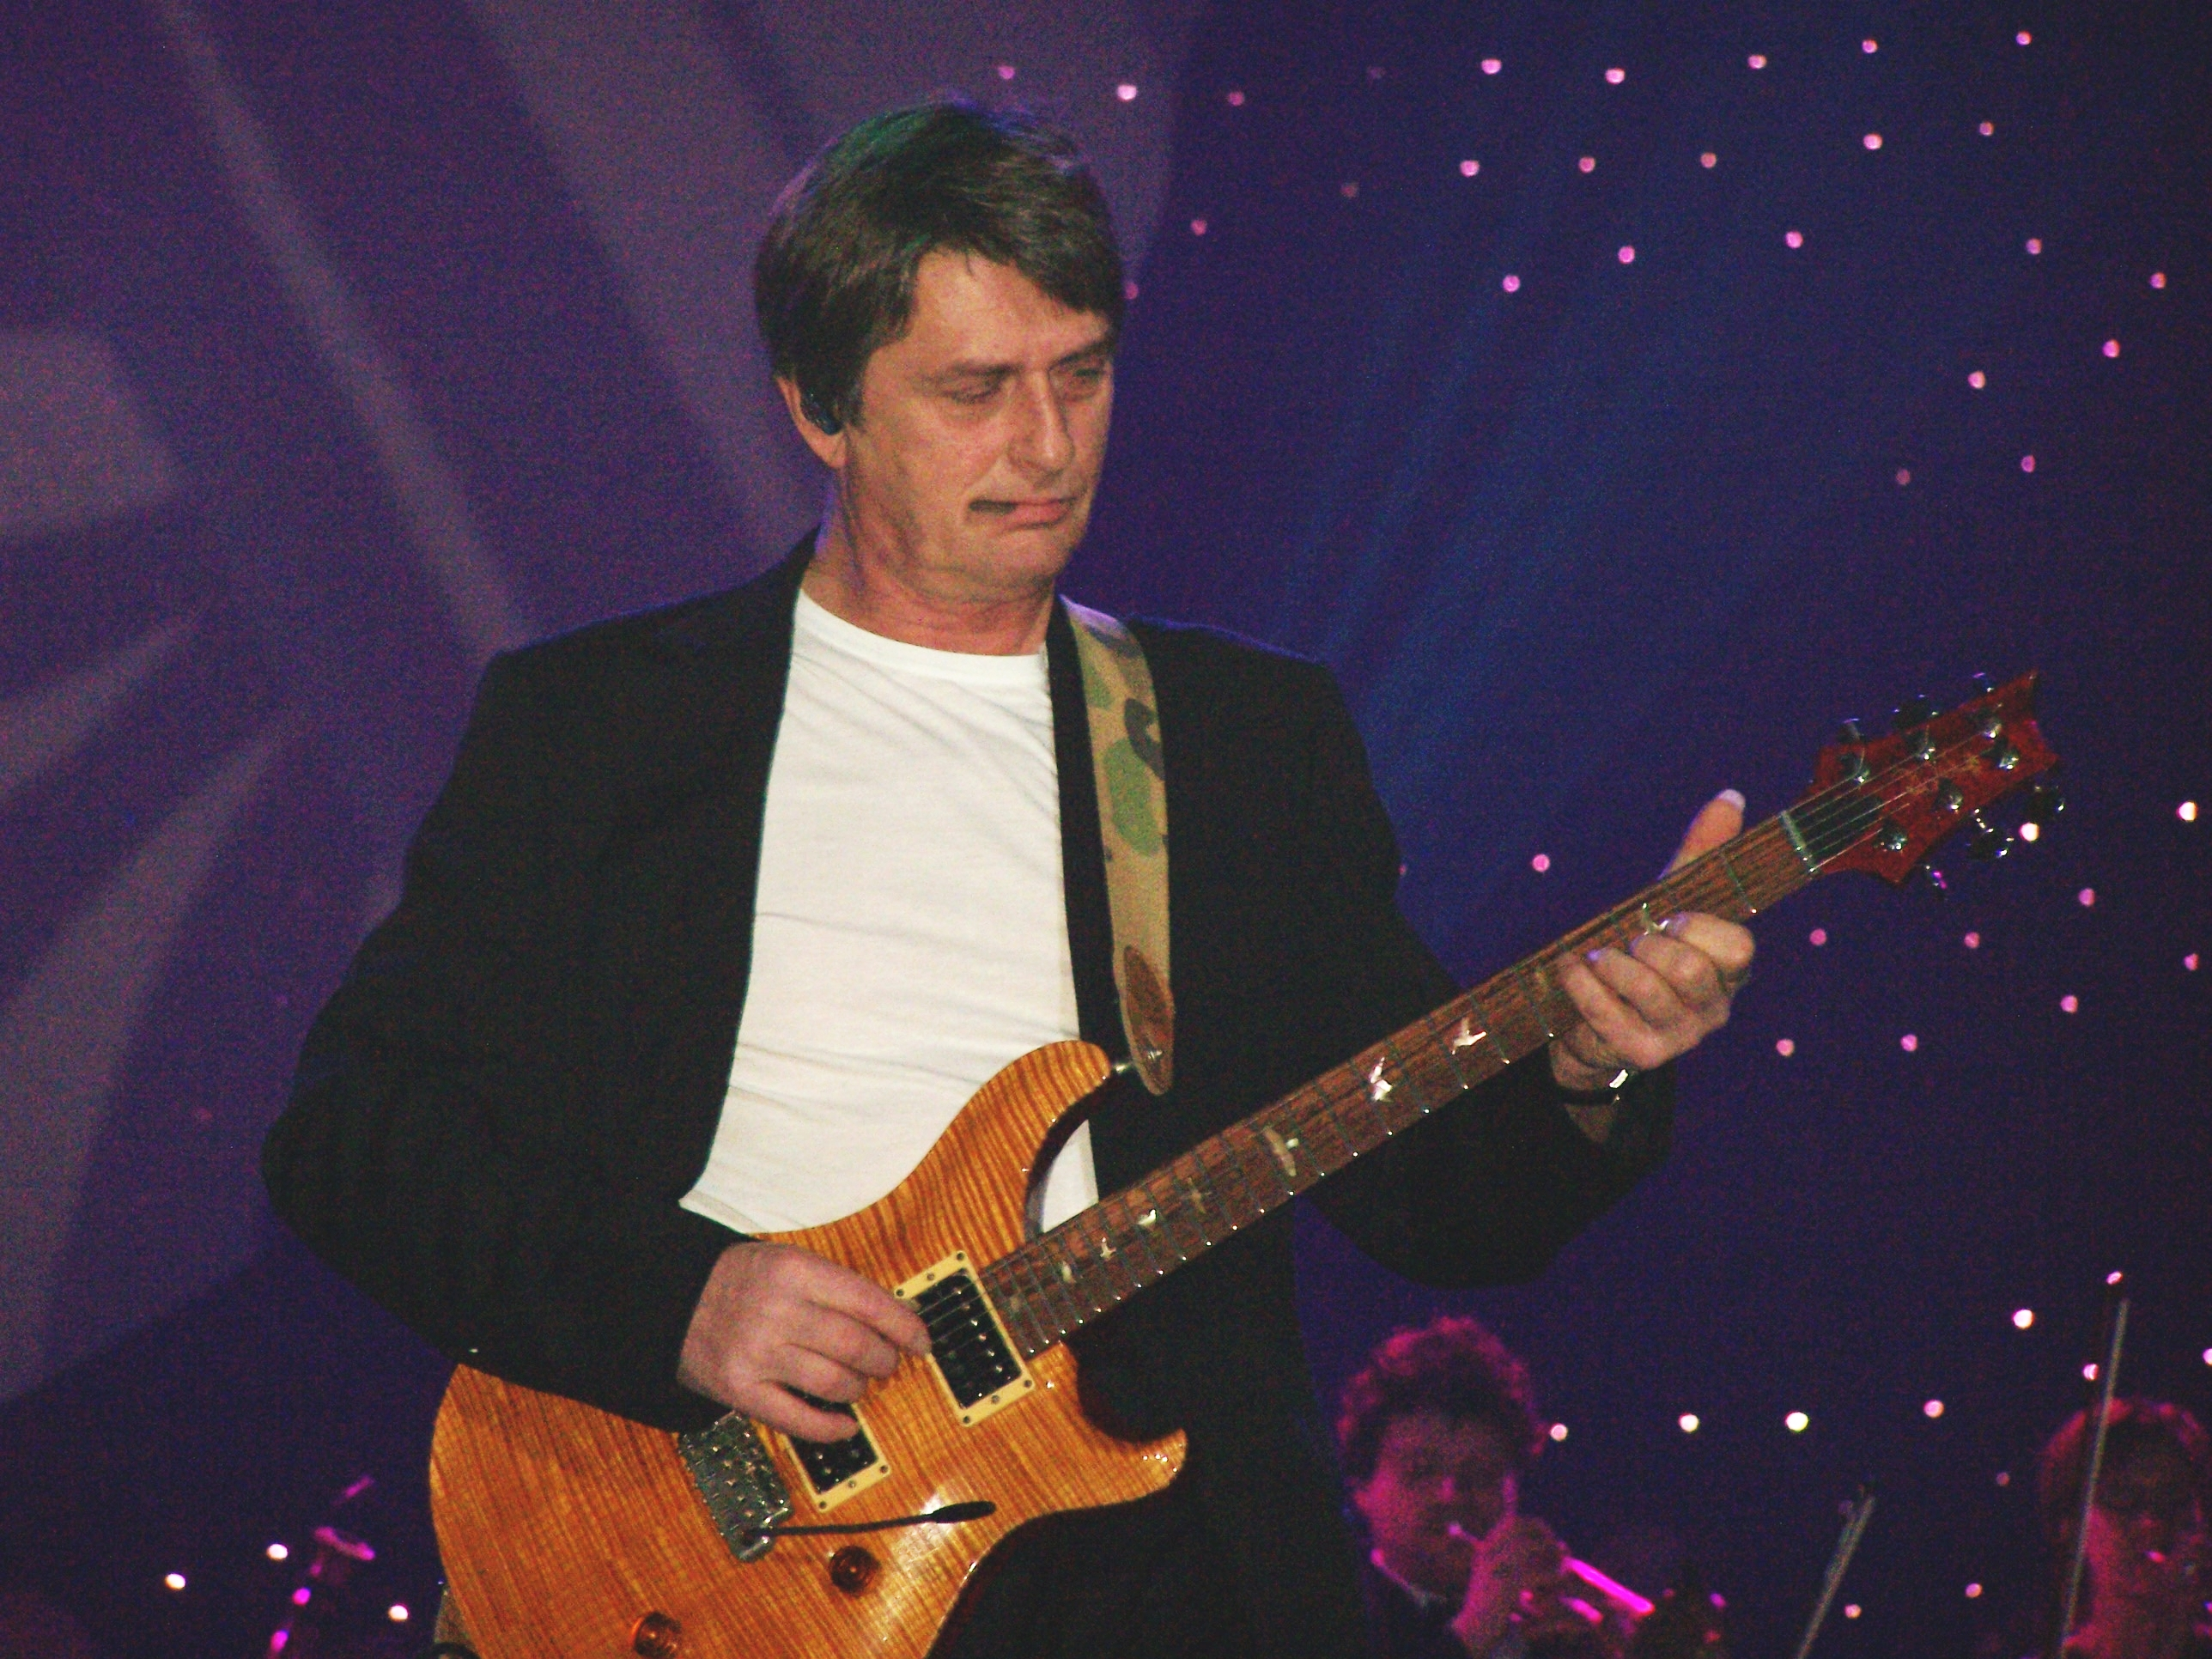 http://upload.wikimedia.org/wikipedia/commons/8/87/Mike_Oldfield_NOTP_2006.jpg